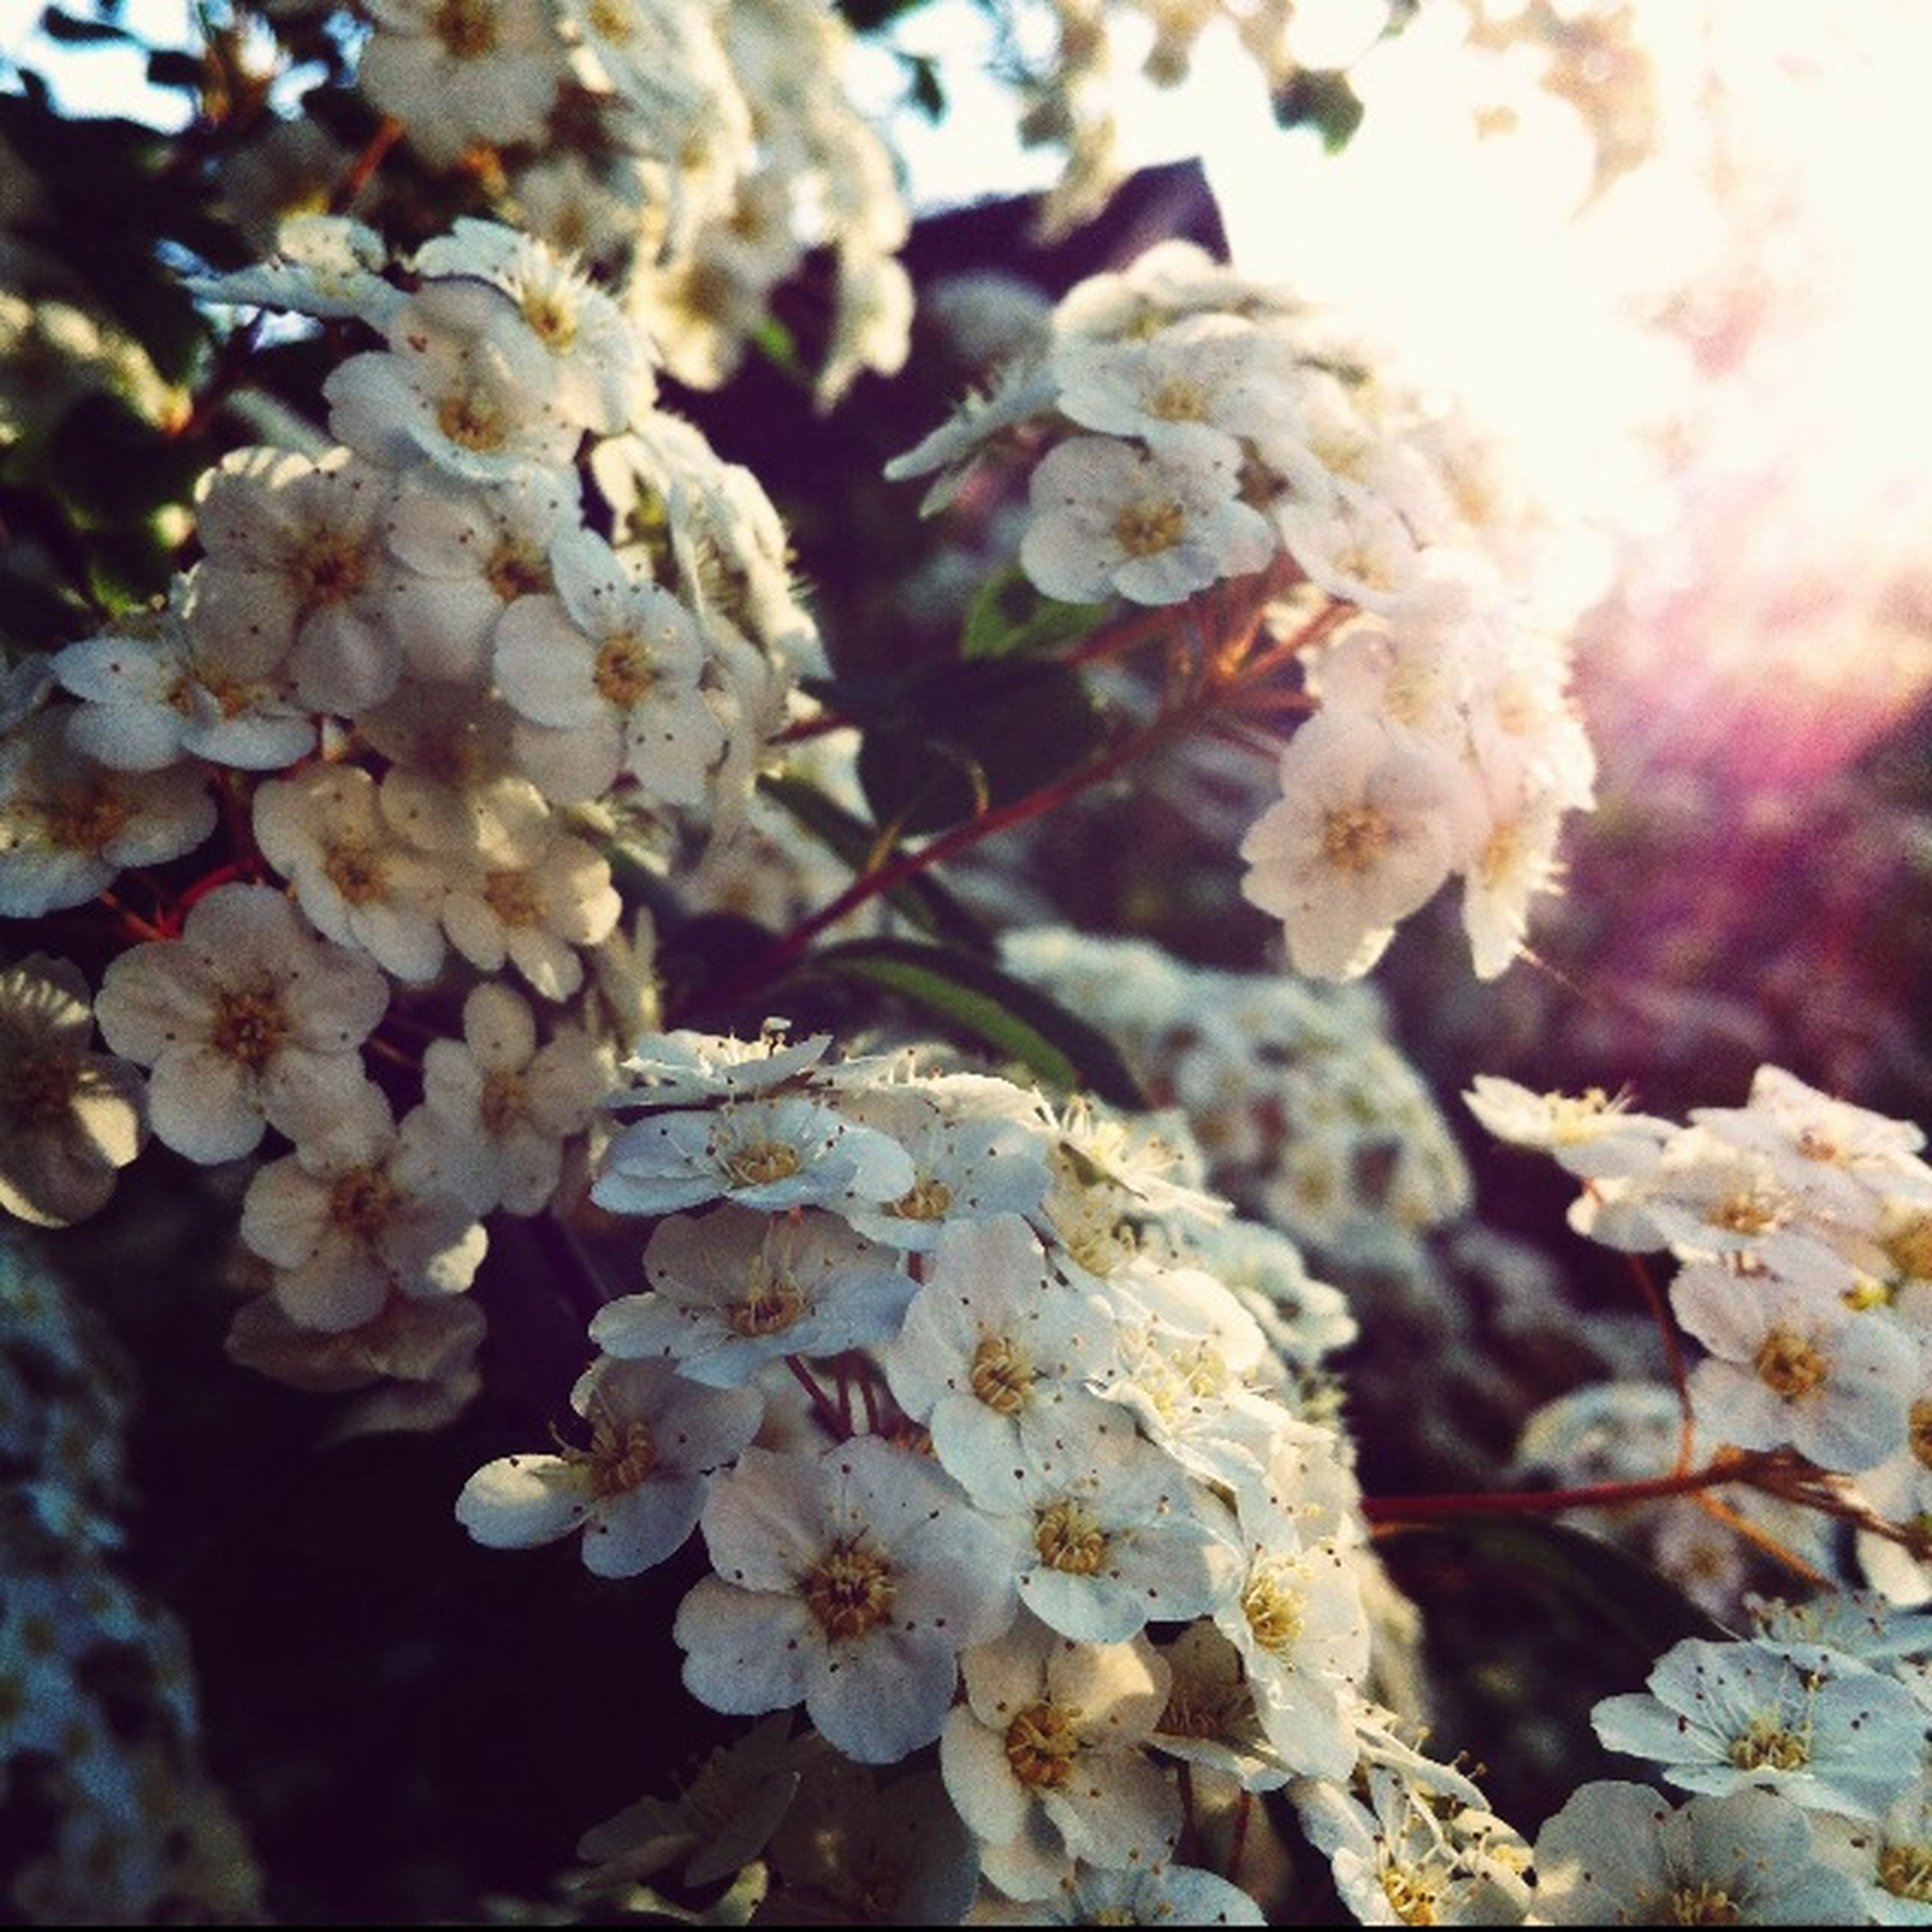 flower, fragility, focus on foreground, freshness, growth, branch, close-up, nature, beauty in nature, petal, tree, white color, blossom, twig, blooming, cherry blossom, flower head, in bloom, springtime, plant